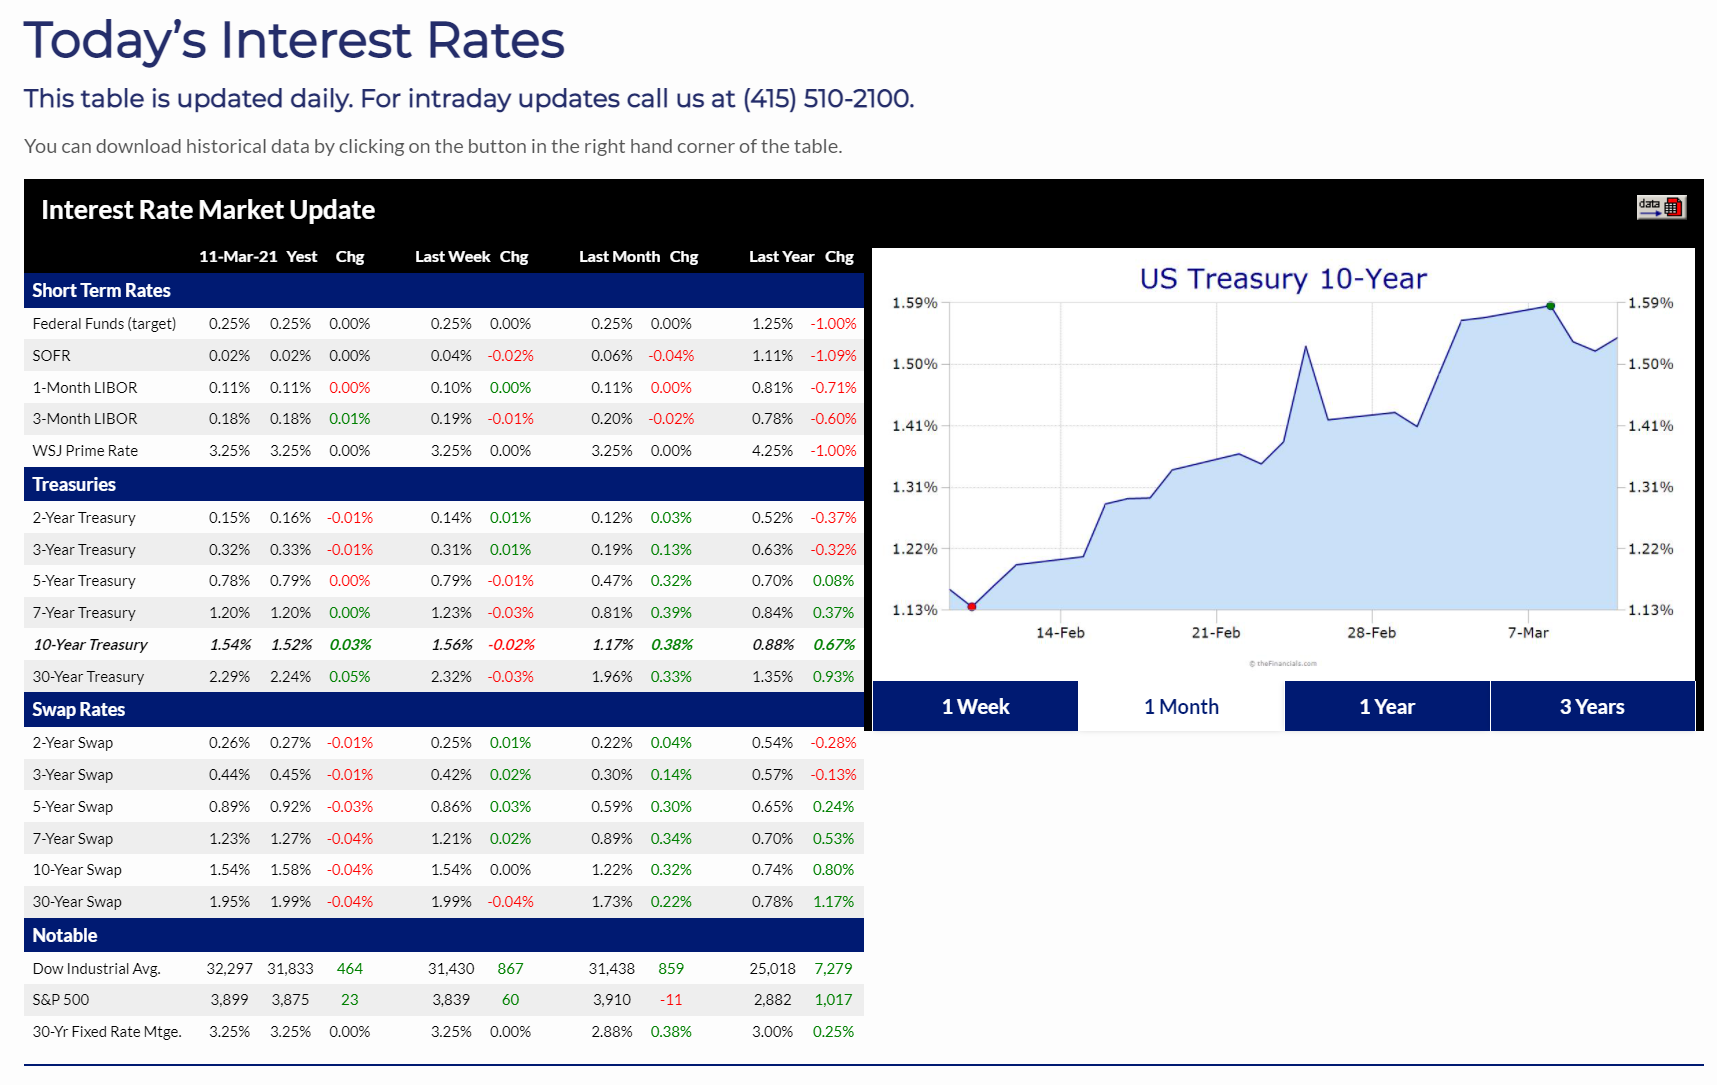 Today's Interest Rates